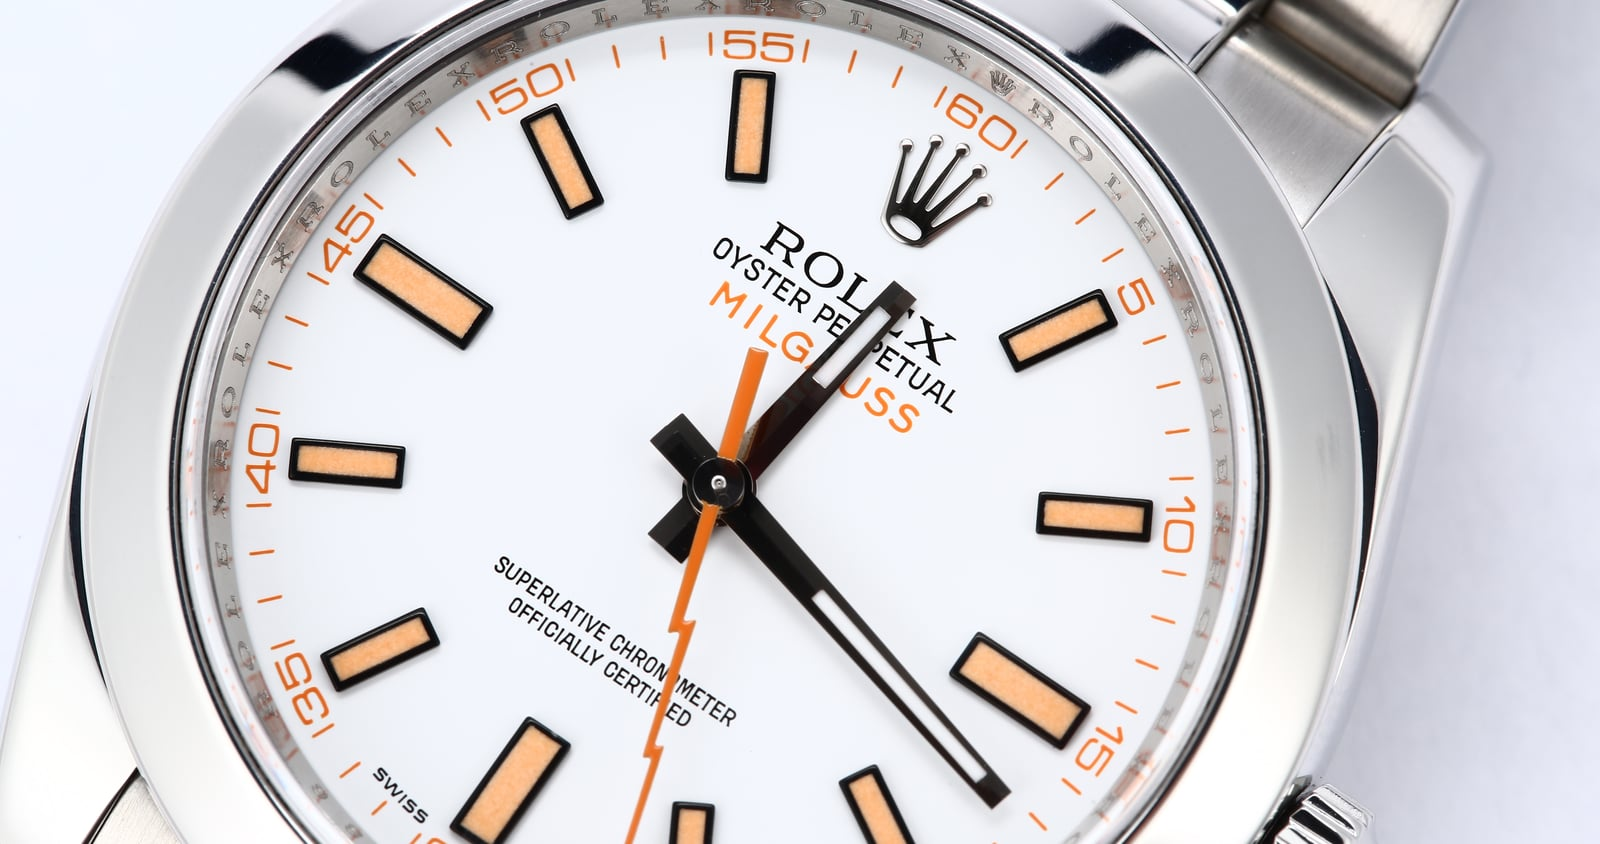 Rolex milgauss 116400 white dial certified rolex milgauss 116400 white dial amipublicfo Images